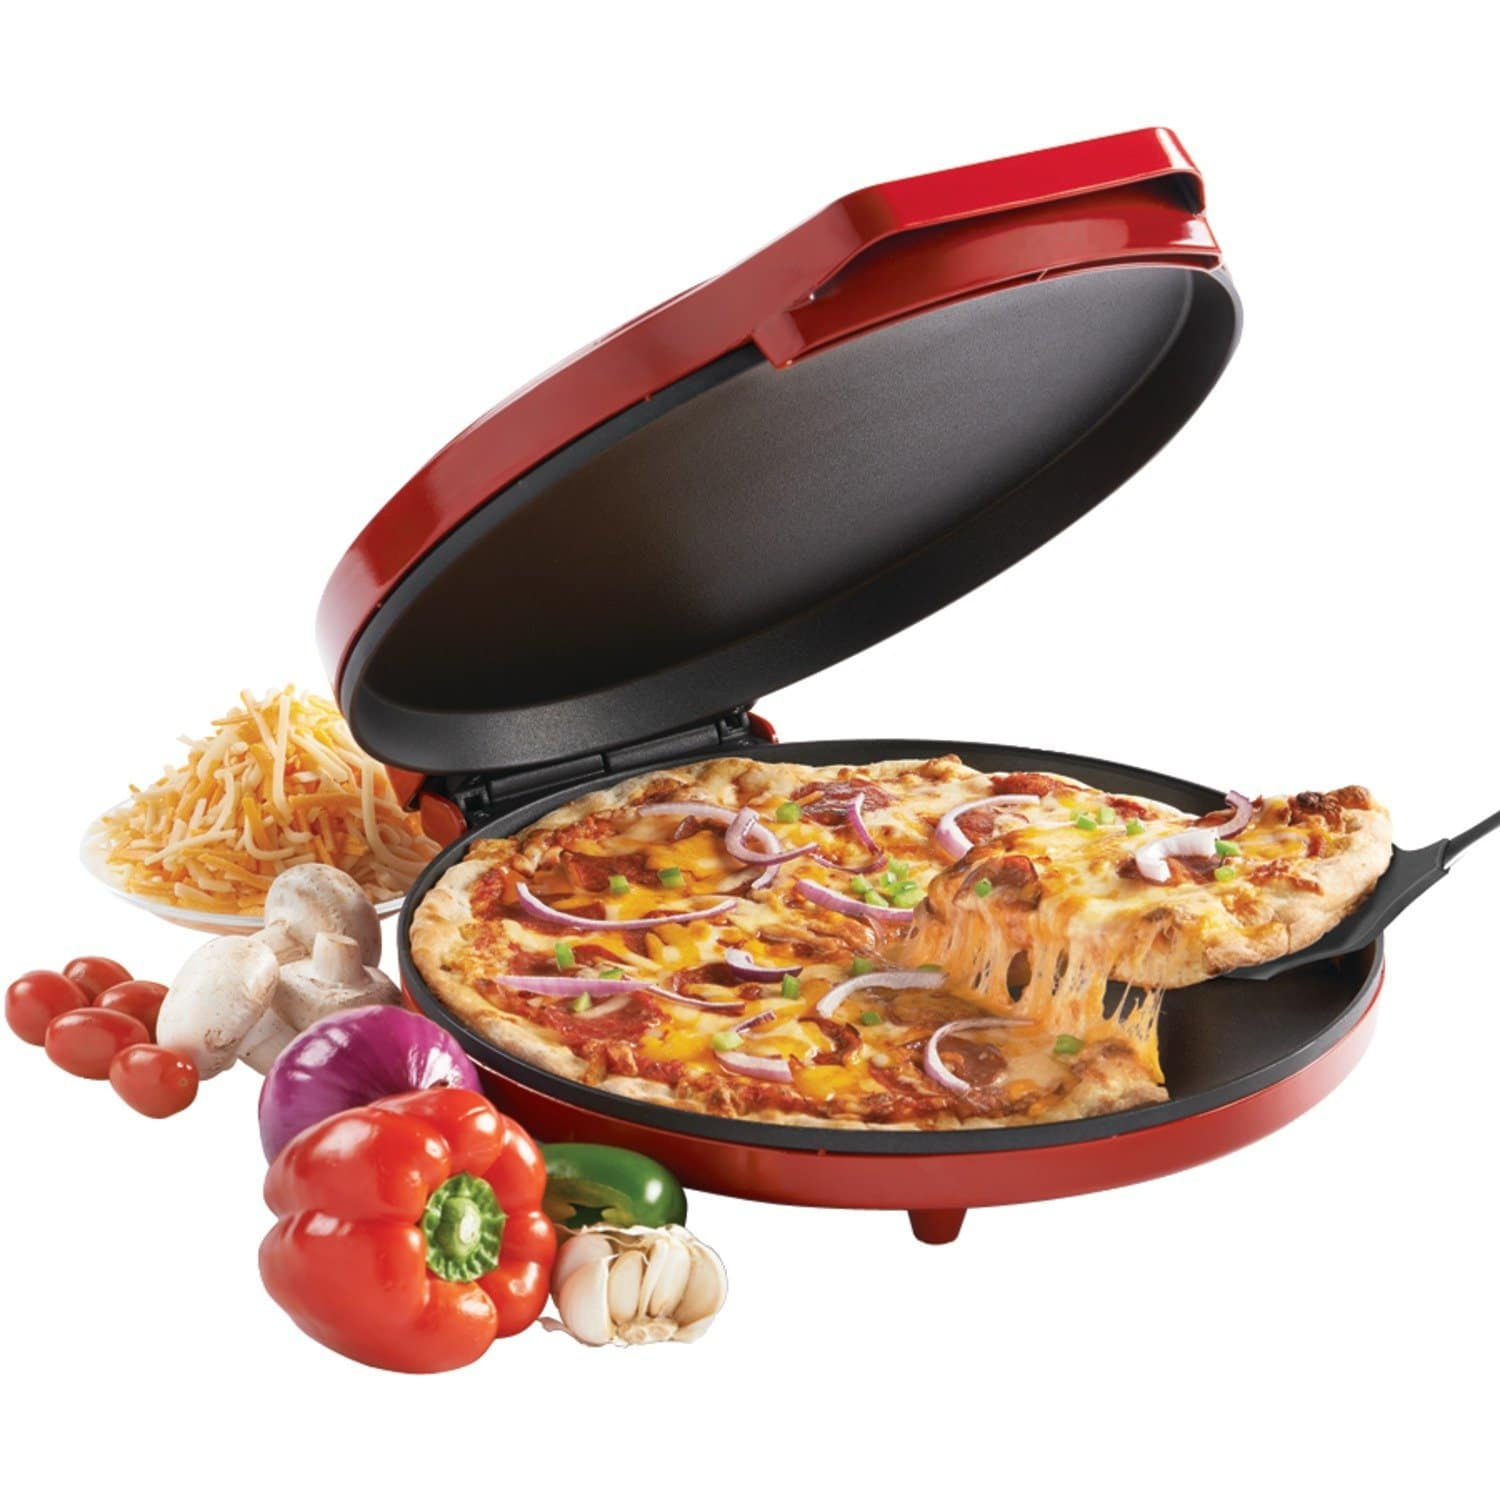 Top 10 Best Home Pizza Ovens in 2020 Reviews